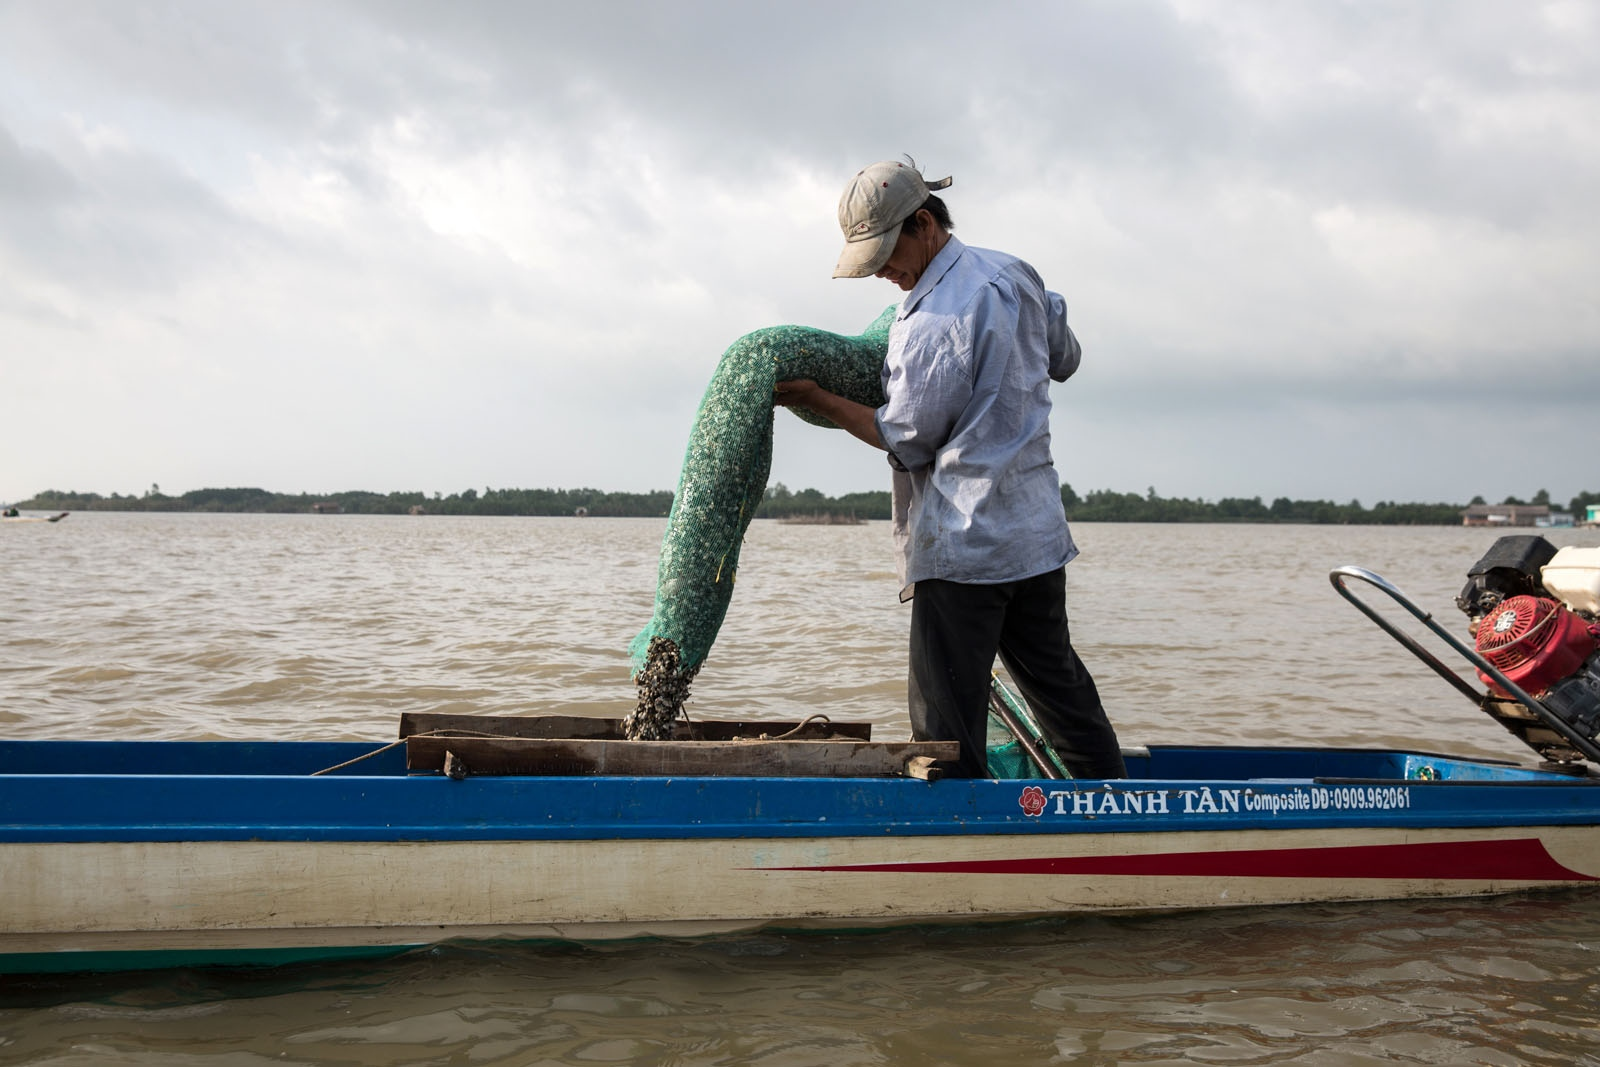 Local fisherman Le Van Mua, 35, collects small snails from his nets at dawn on Thi Tuong Lagoon. He is very careful only to collect the small snails, the bigger ones he put back in the water to breed again. He then sells the snails to crab farms to feed their crabs and is able to make around US$10-US$15 profit per day. But he has only been doing this for a year after realising there was a demand for it and with fish stocks reduced so much it seemed a good alternative to fishing.